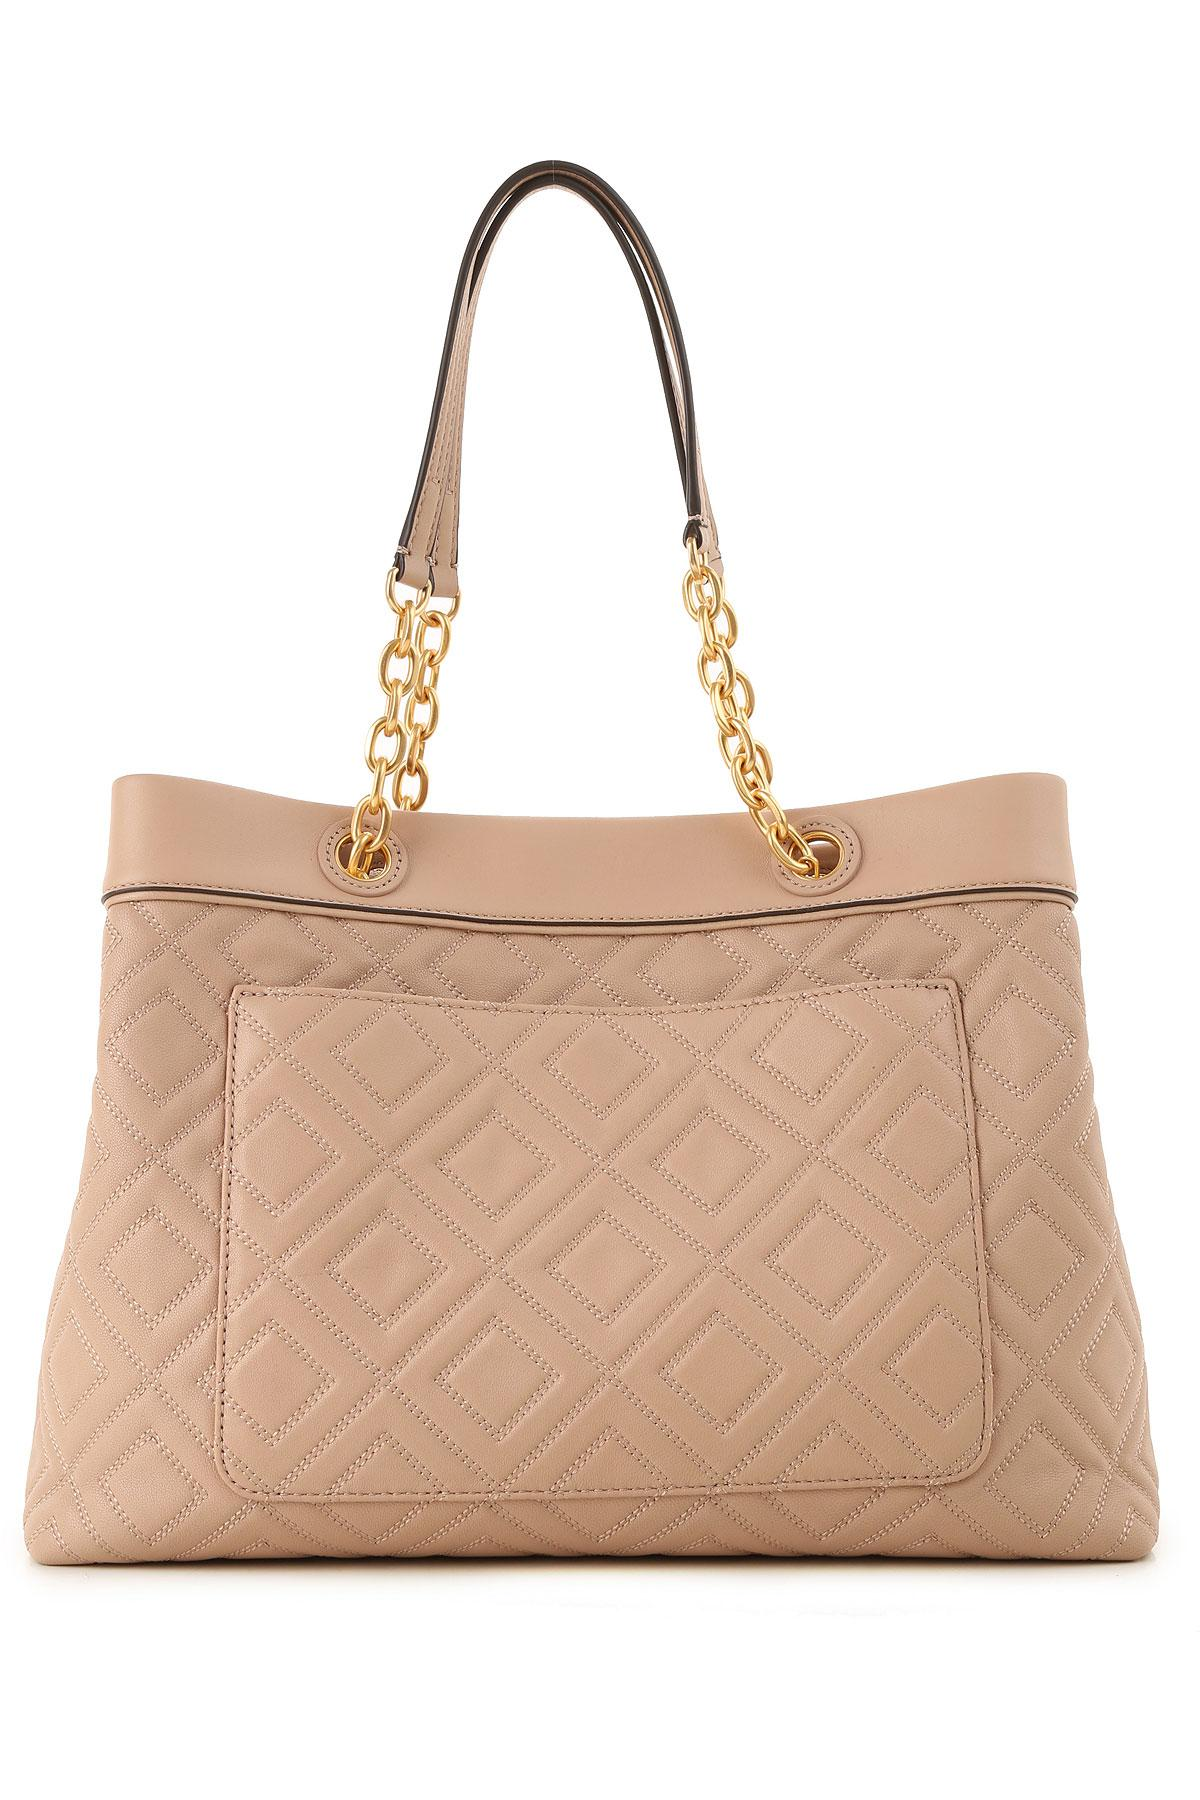 9dc0d76c6242 Lyst - Tory Burch Tote Bag On Sale